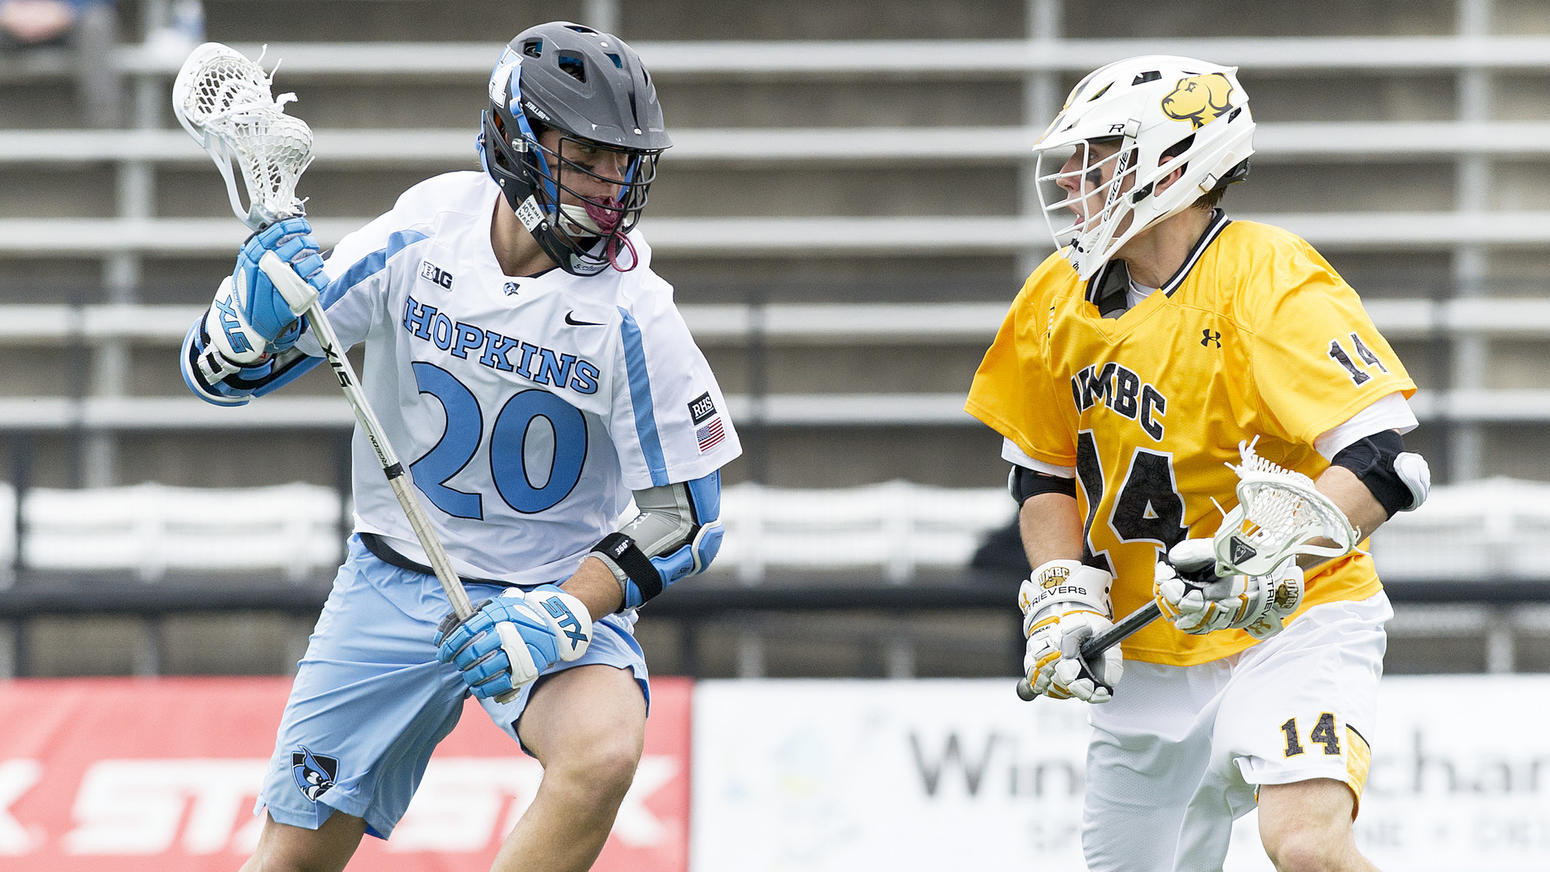 Postscript from UMBC at Johns Hopkins men's lacrosse